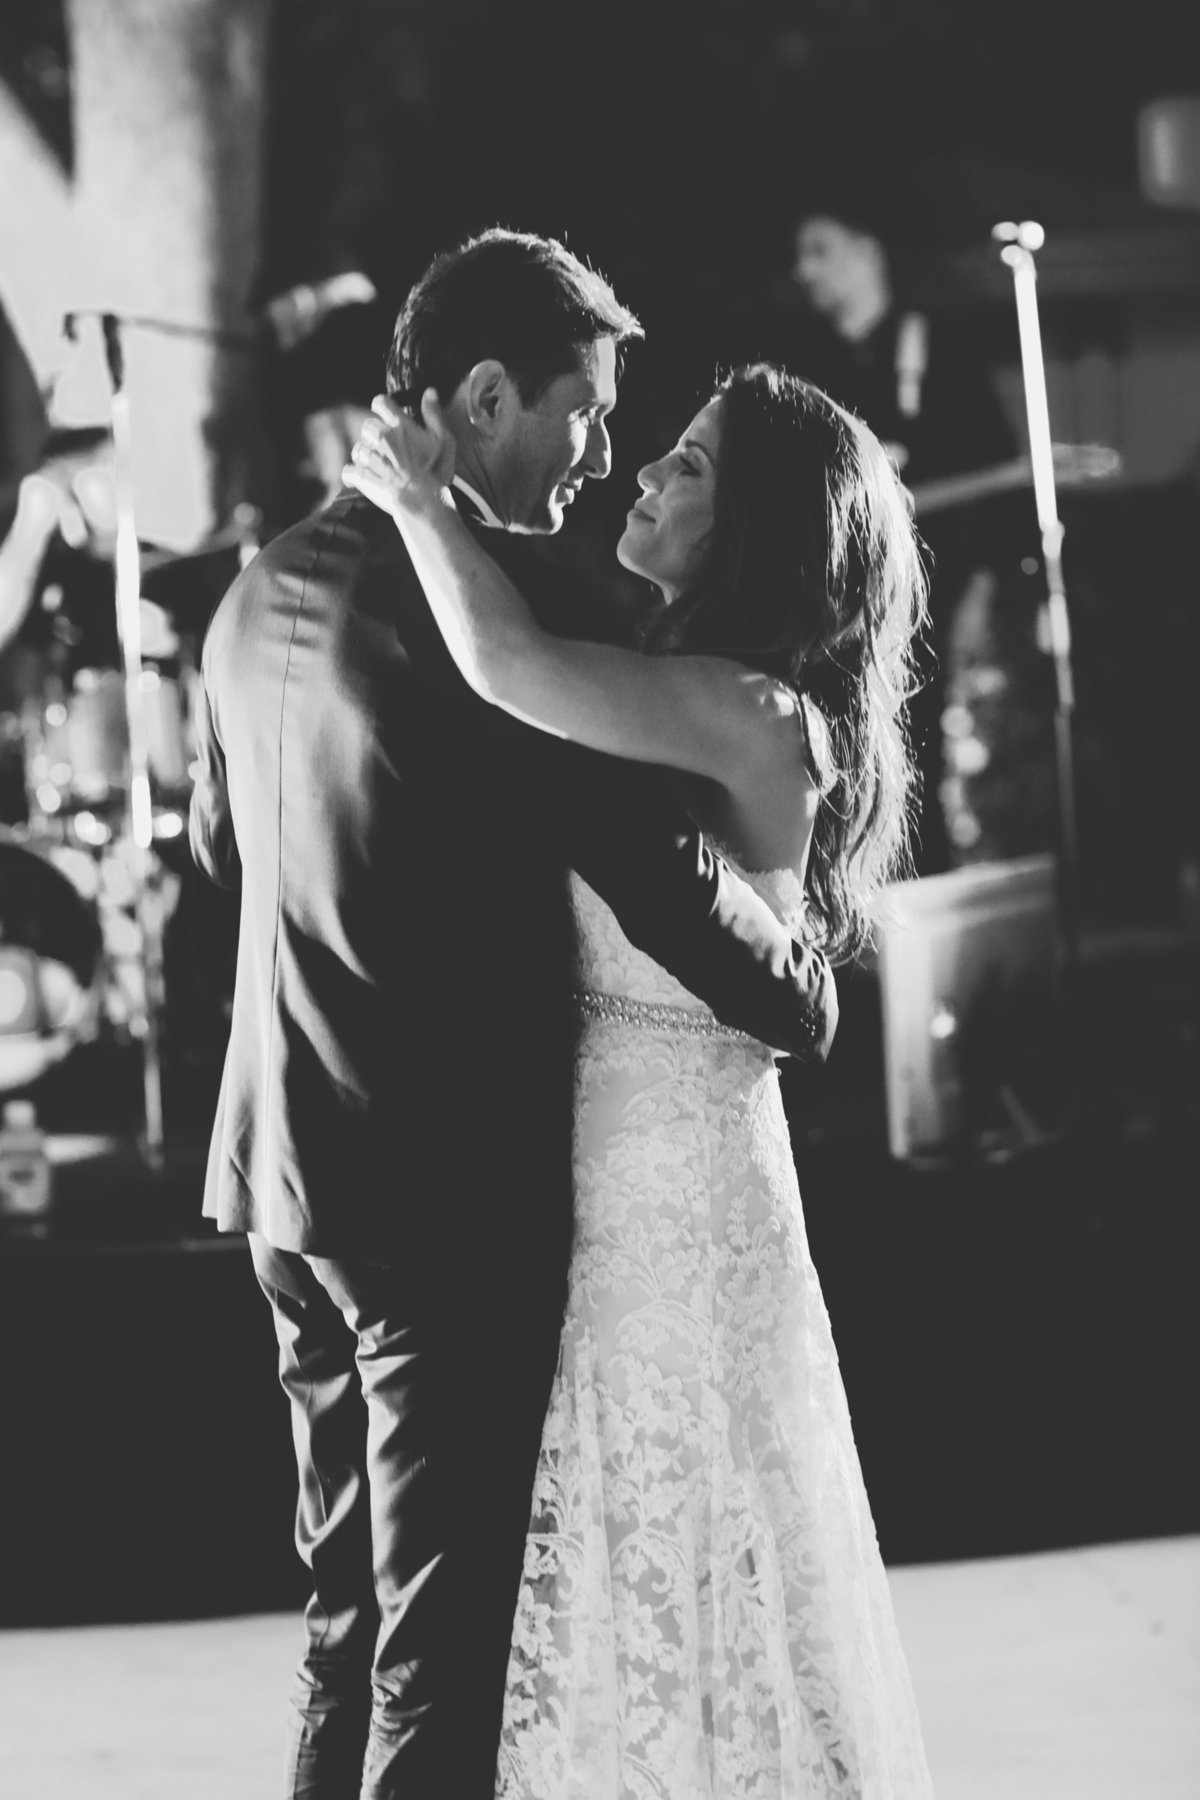 The First Dance in Black and White, Wedding, Engagement, Proposal, Destination Photography